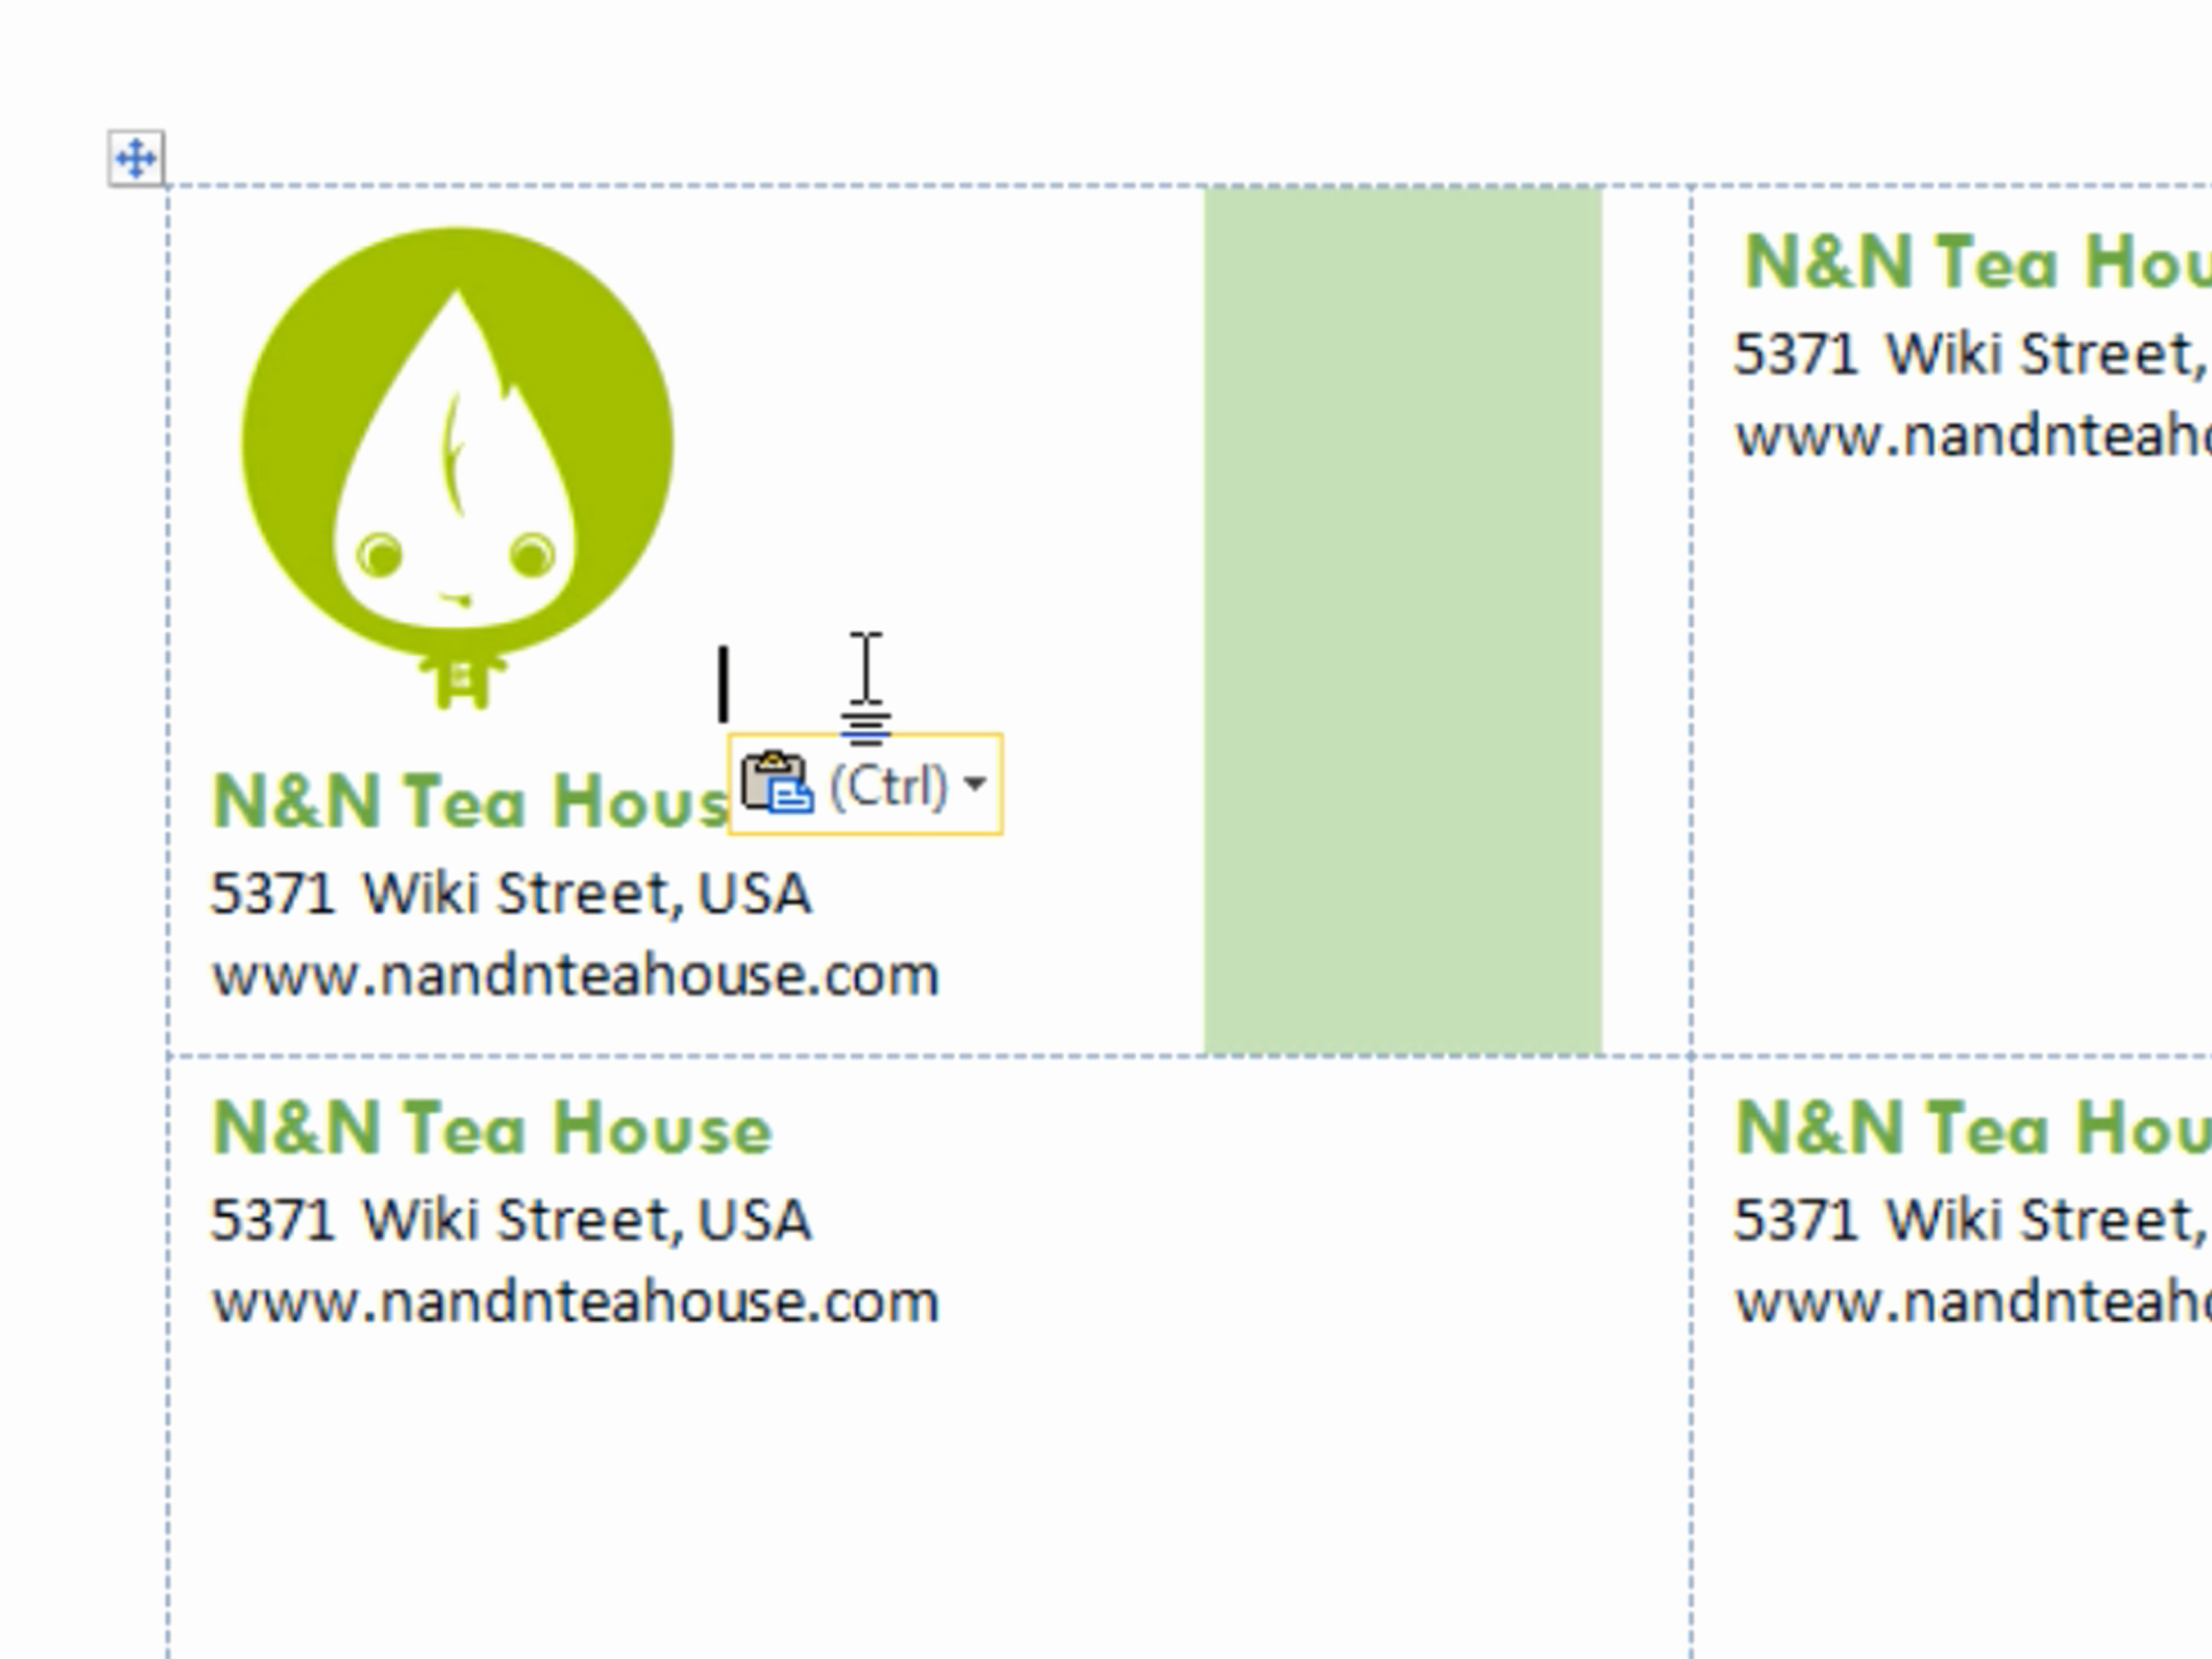 Word Template for Business Cards Fresh Business Cards Templates Free for Word